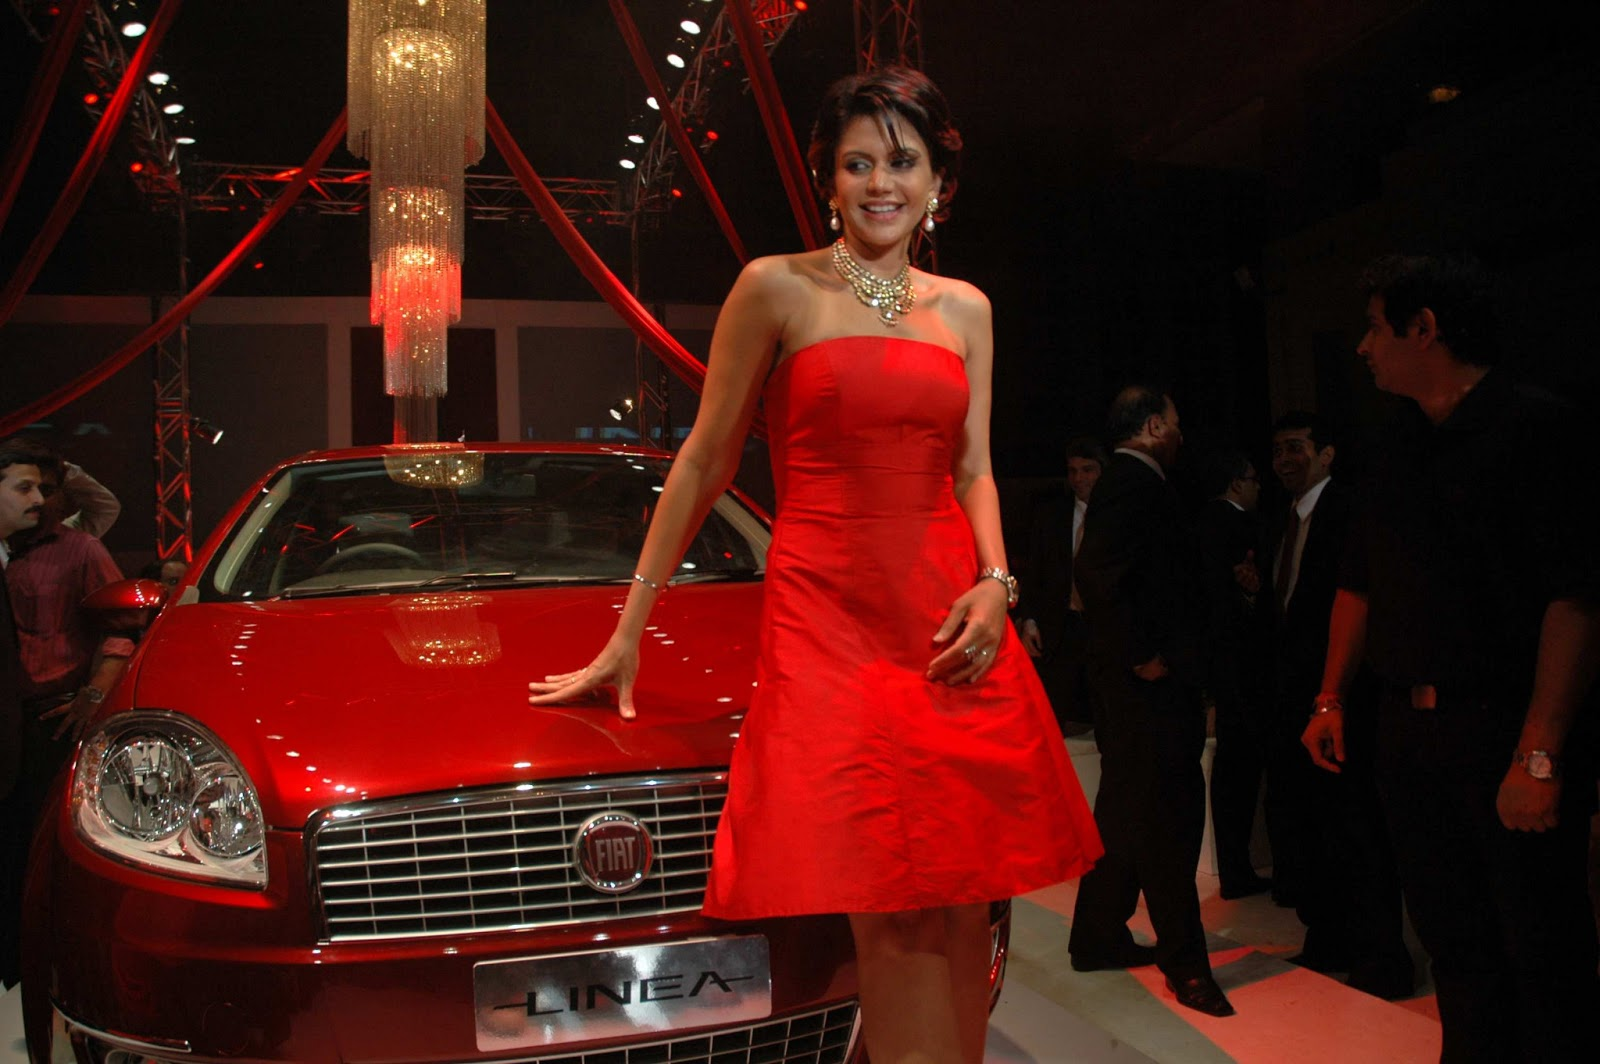 new cars in india 2013, latest car news india: 5 mistakes to avoid